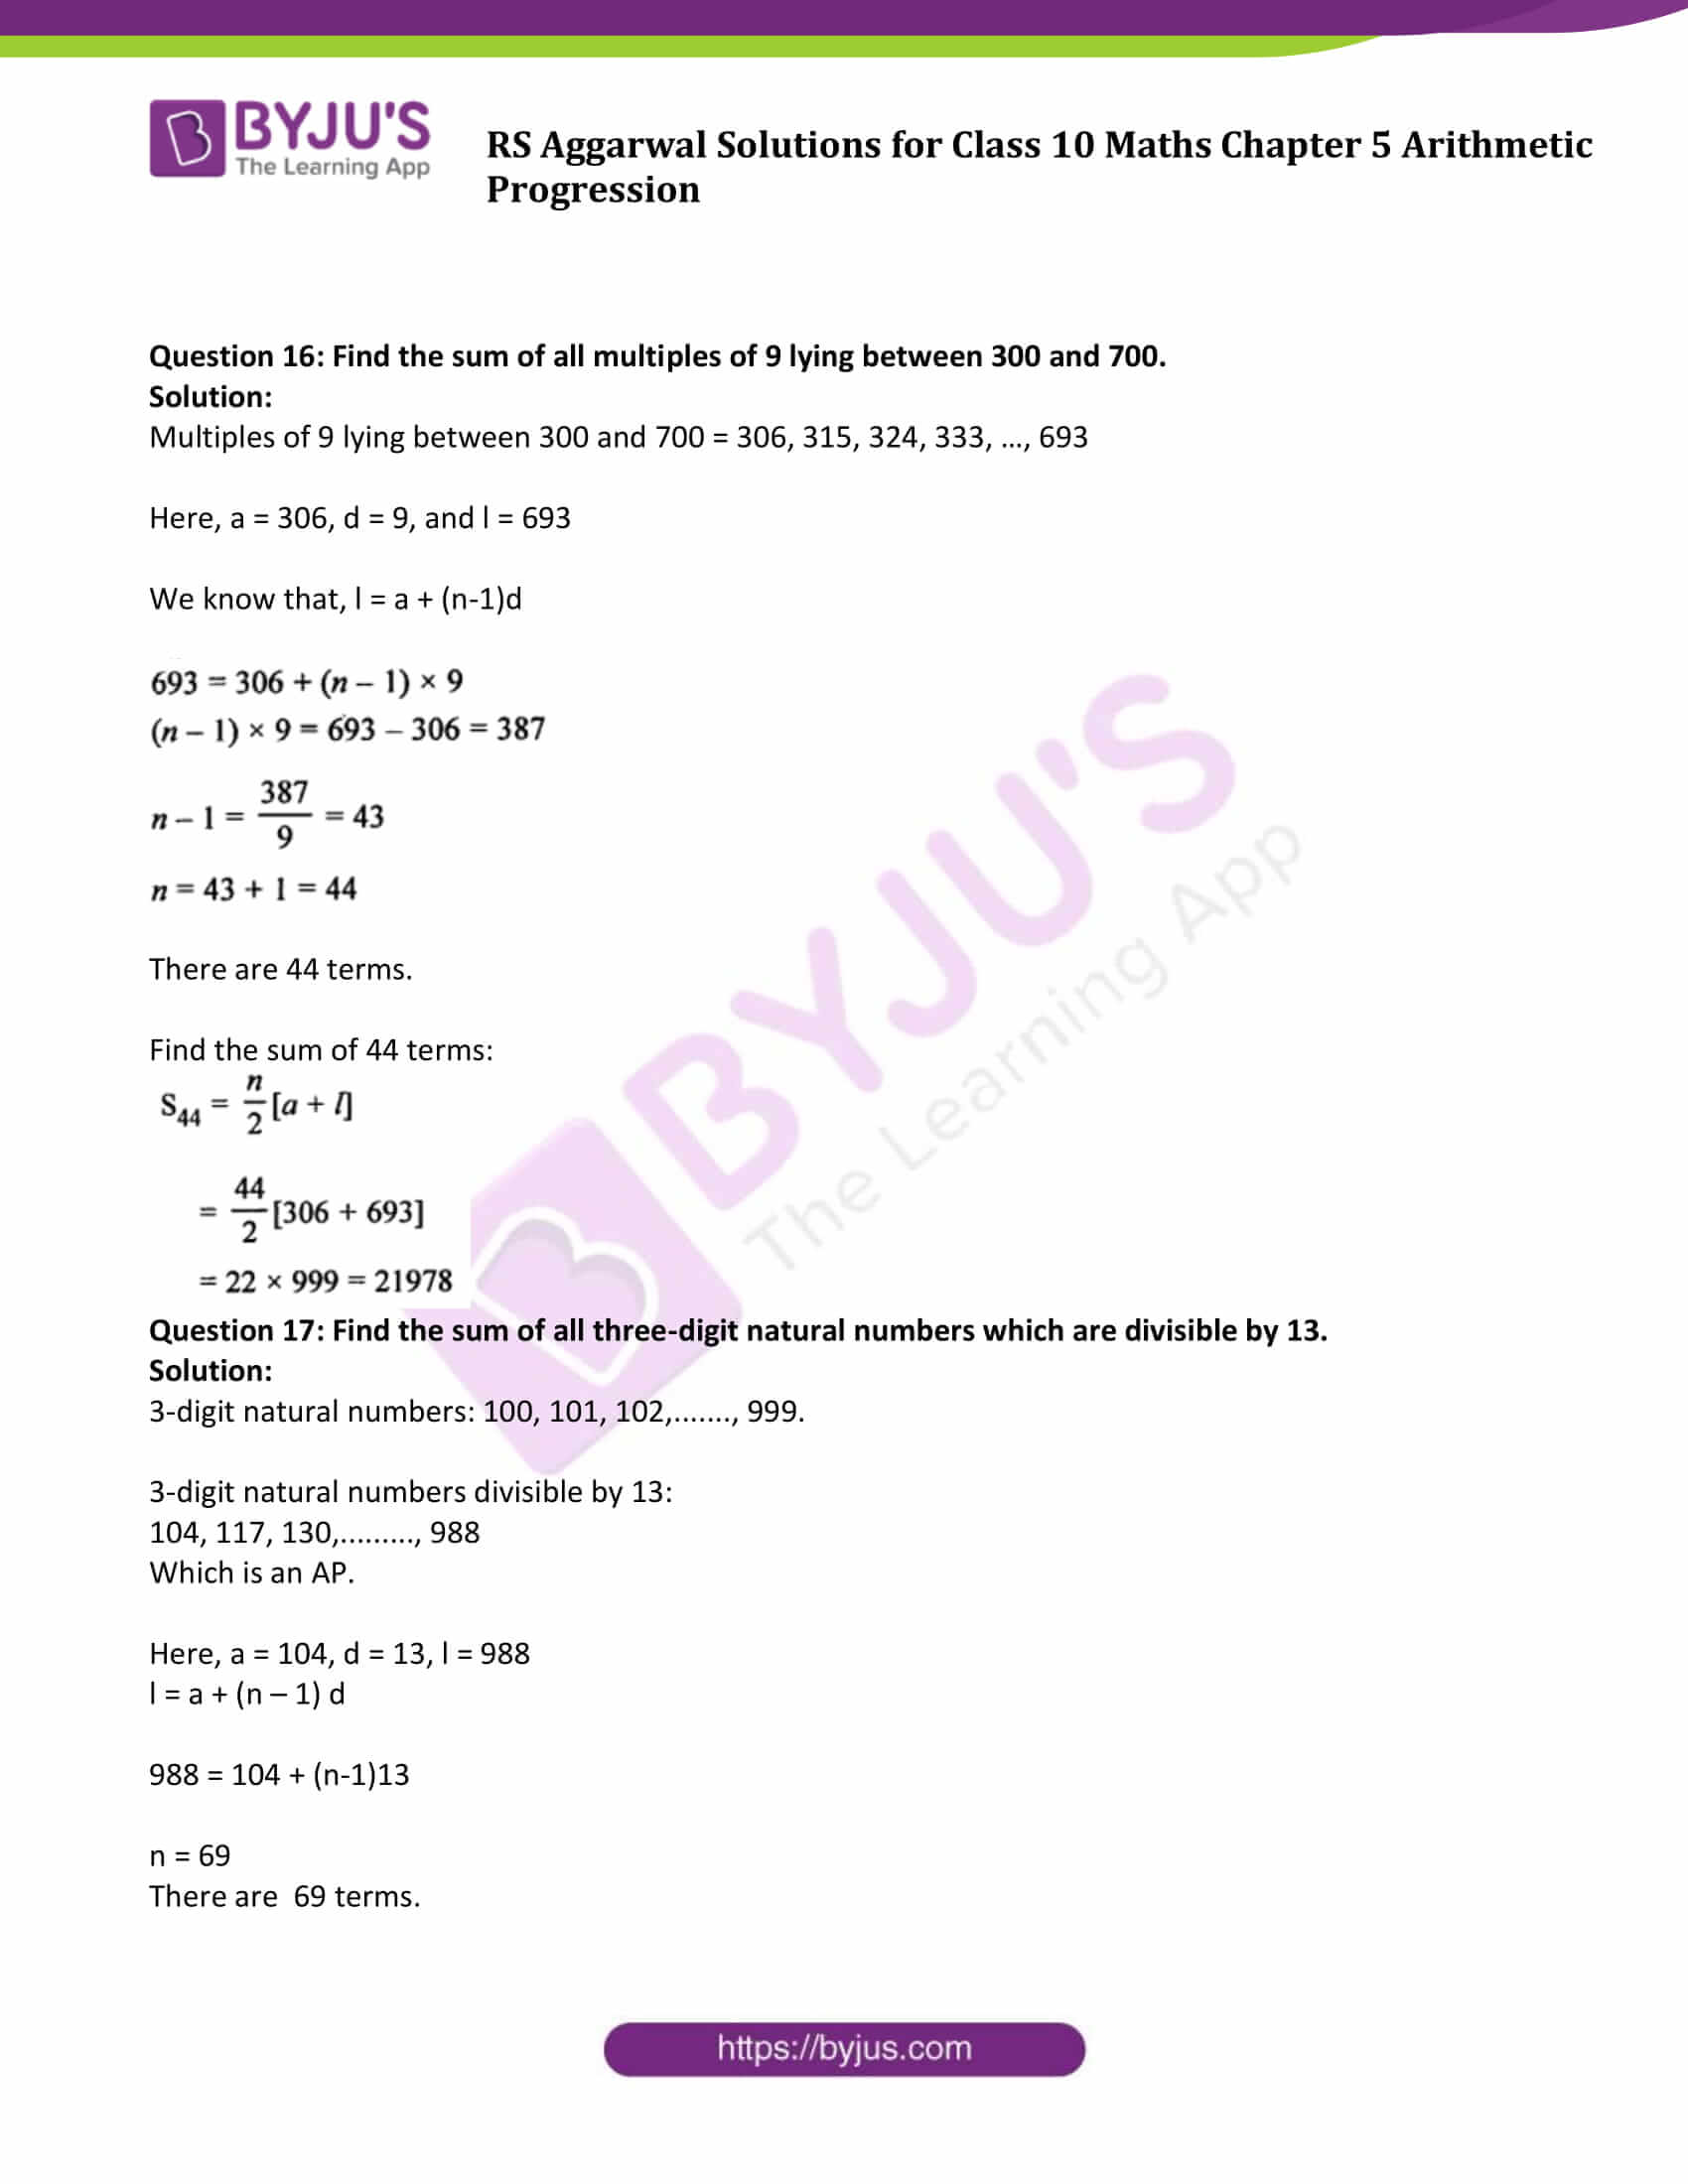 RS Aggarwal Sol class 10 Maths Chapter 5C